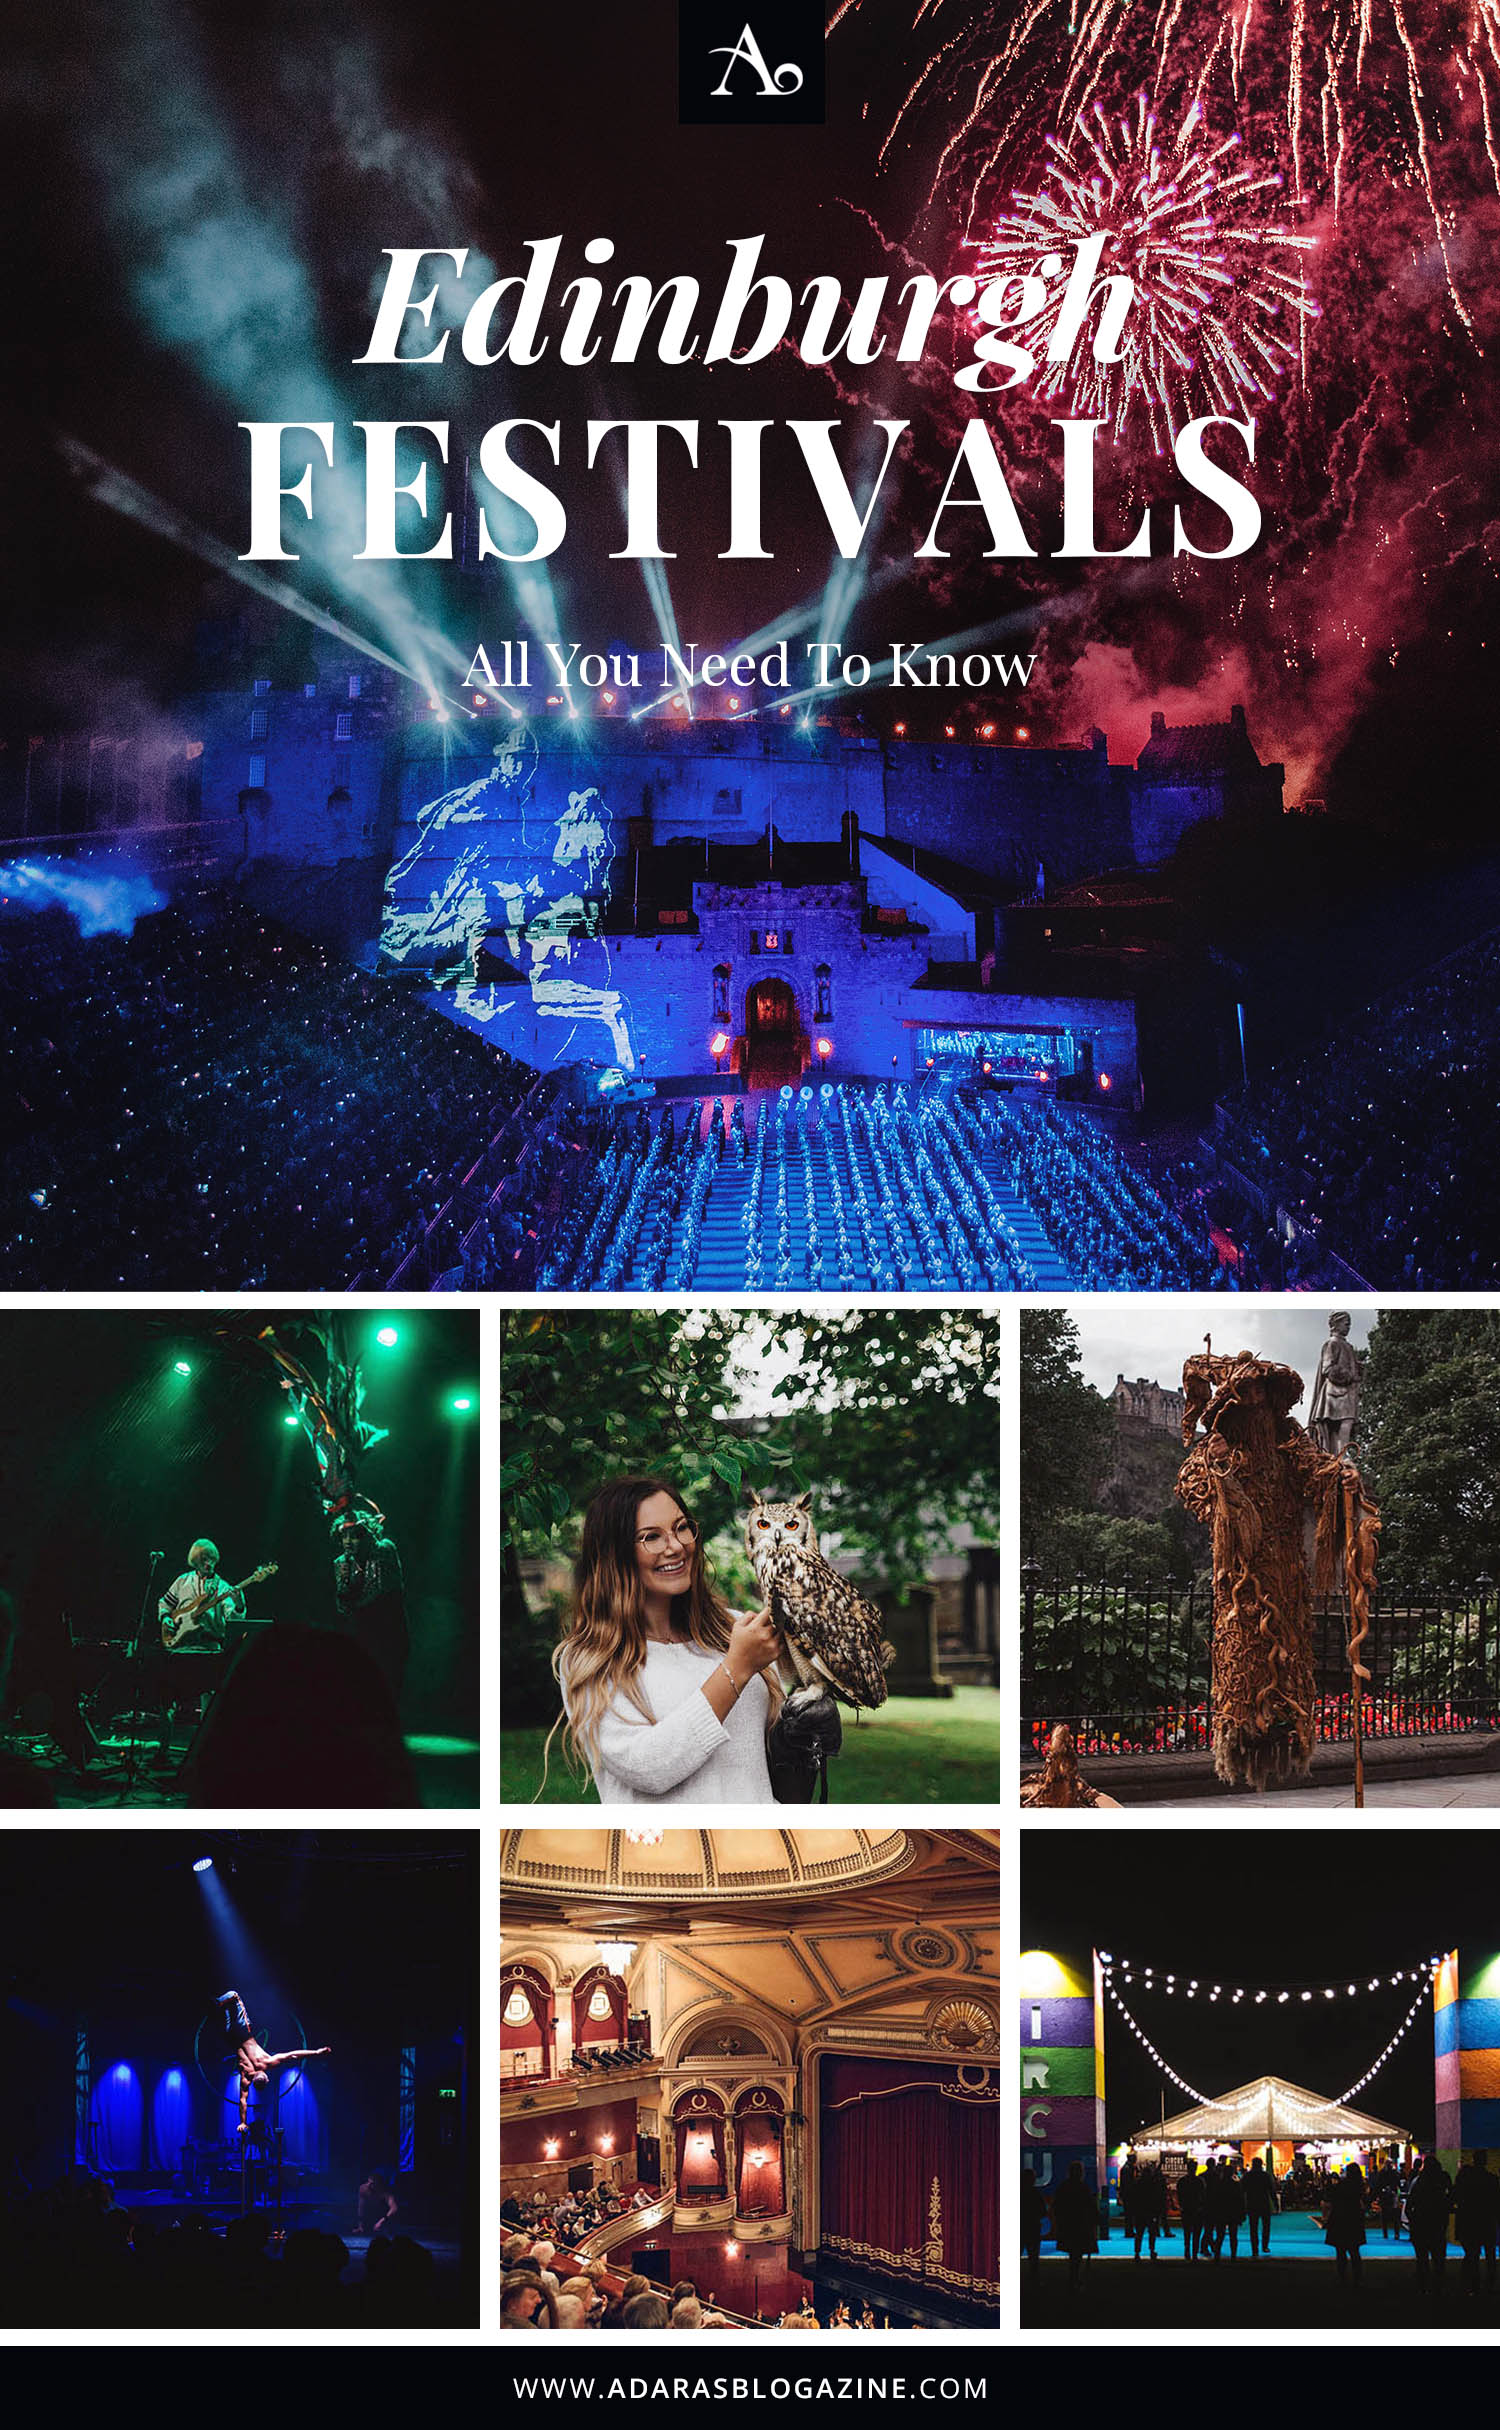 Edinburgh Festivals Guide: All you need to know